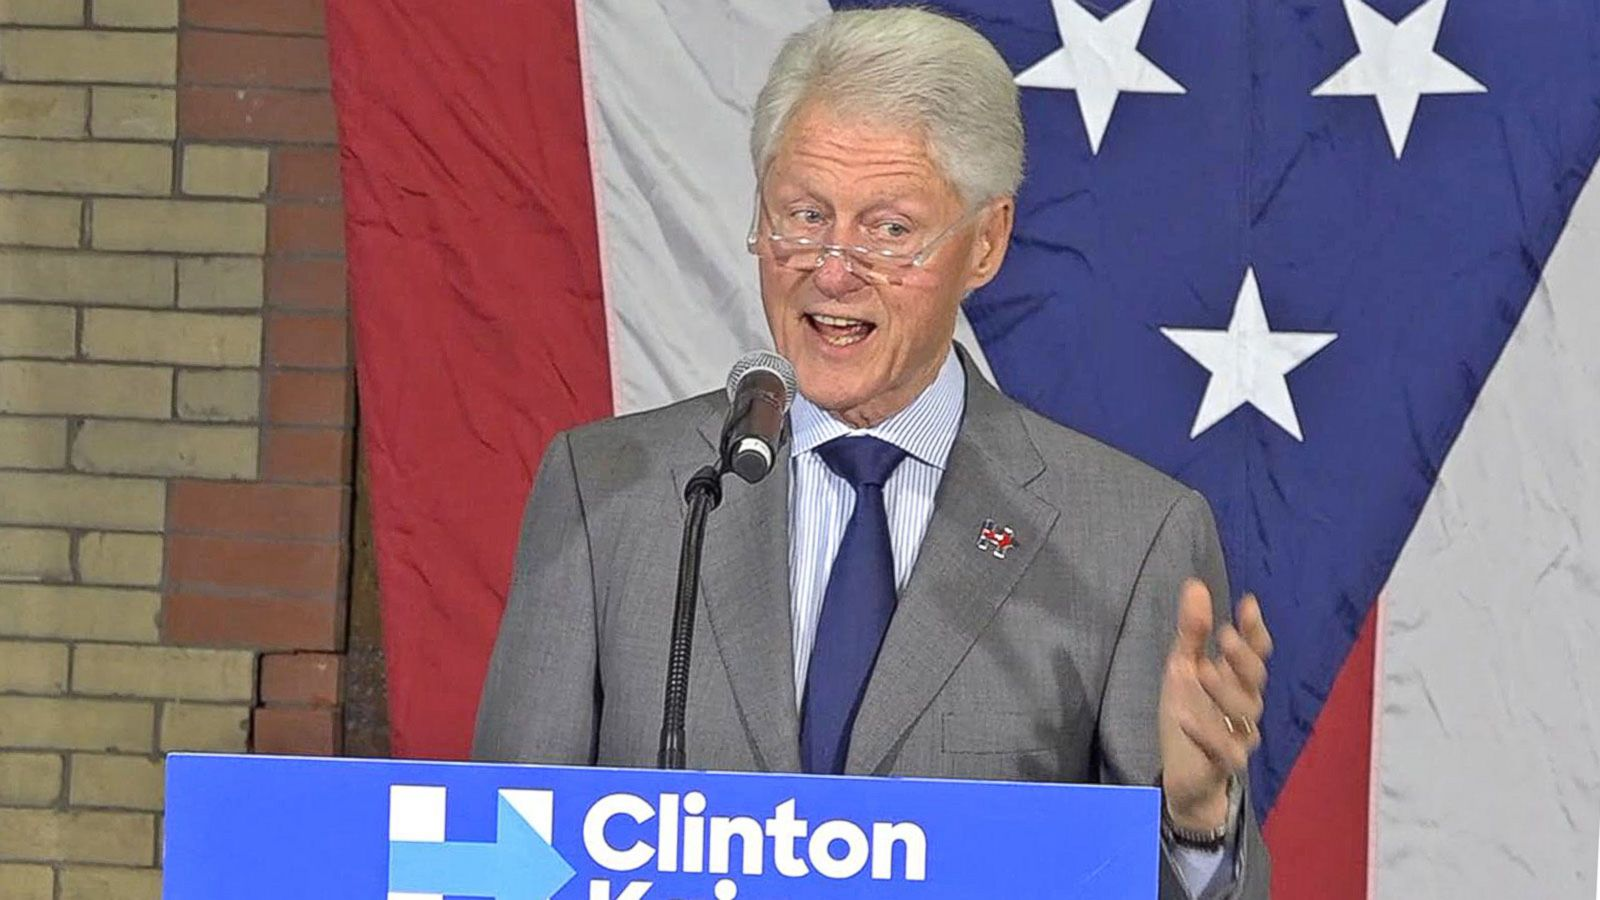 VIDEO: Bill Clinton on Free Trade Deals and the 1st Presidential Debate